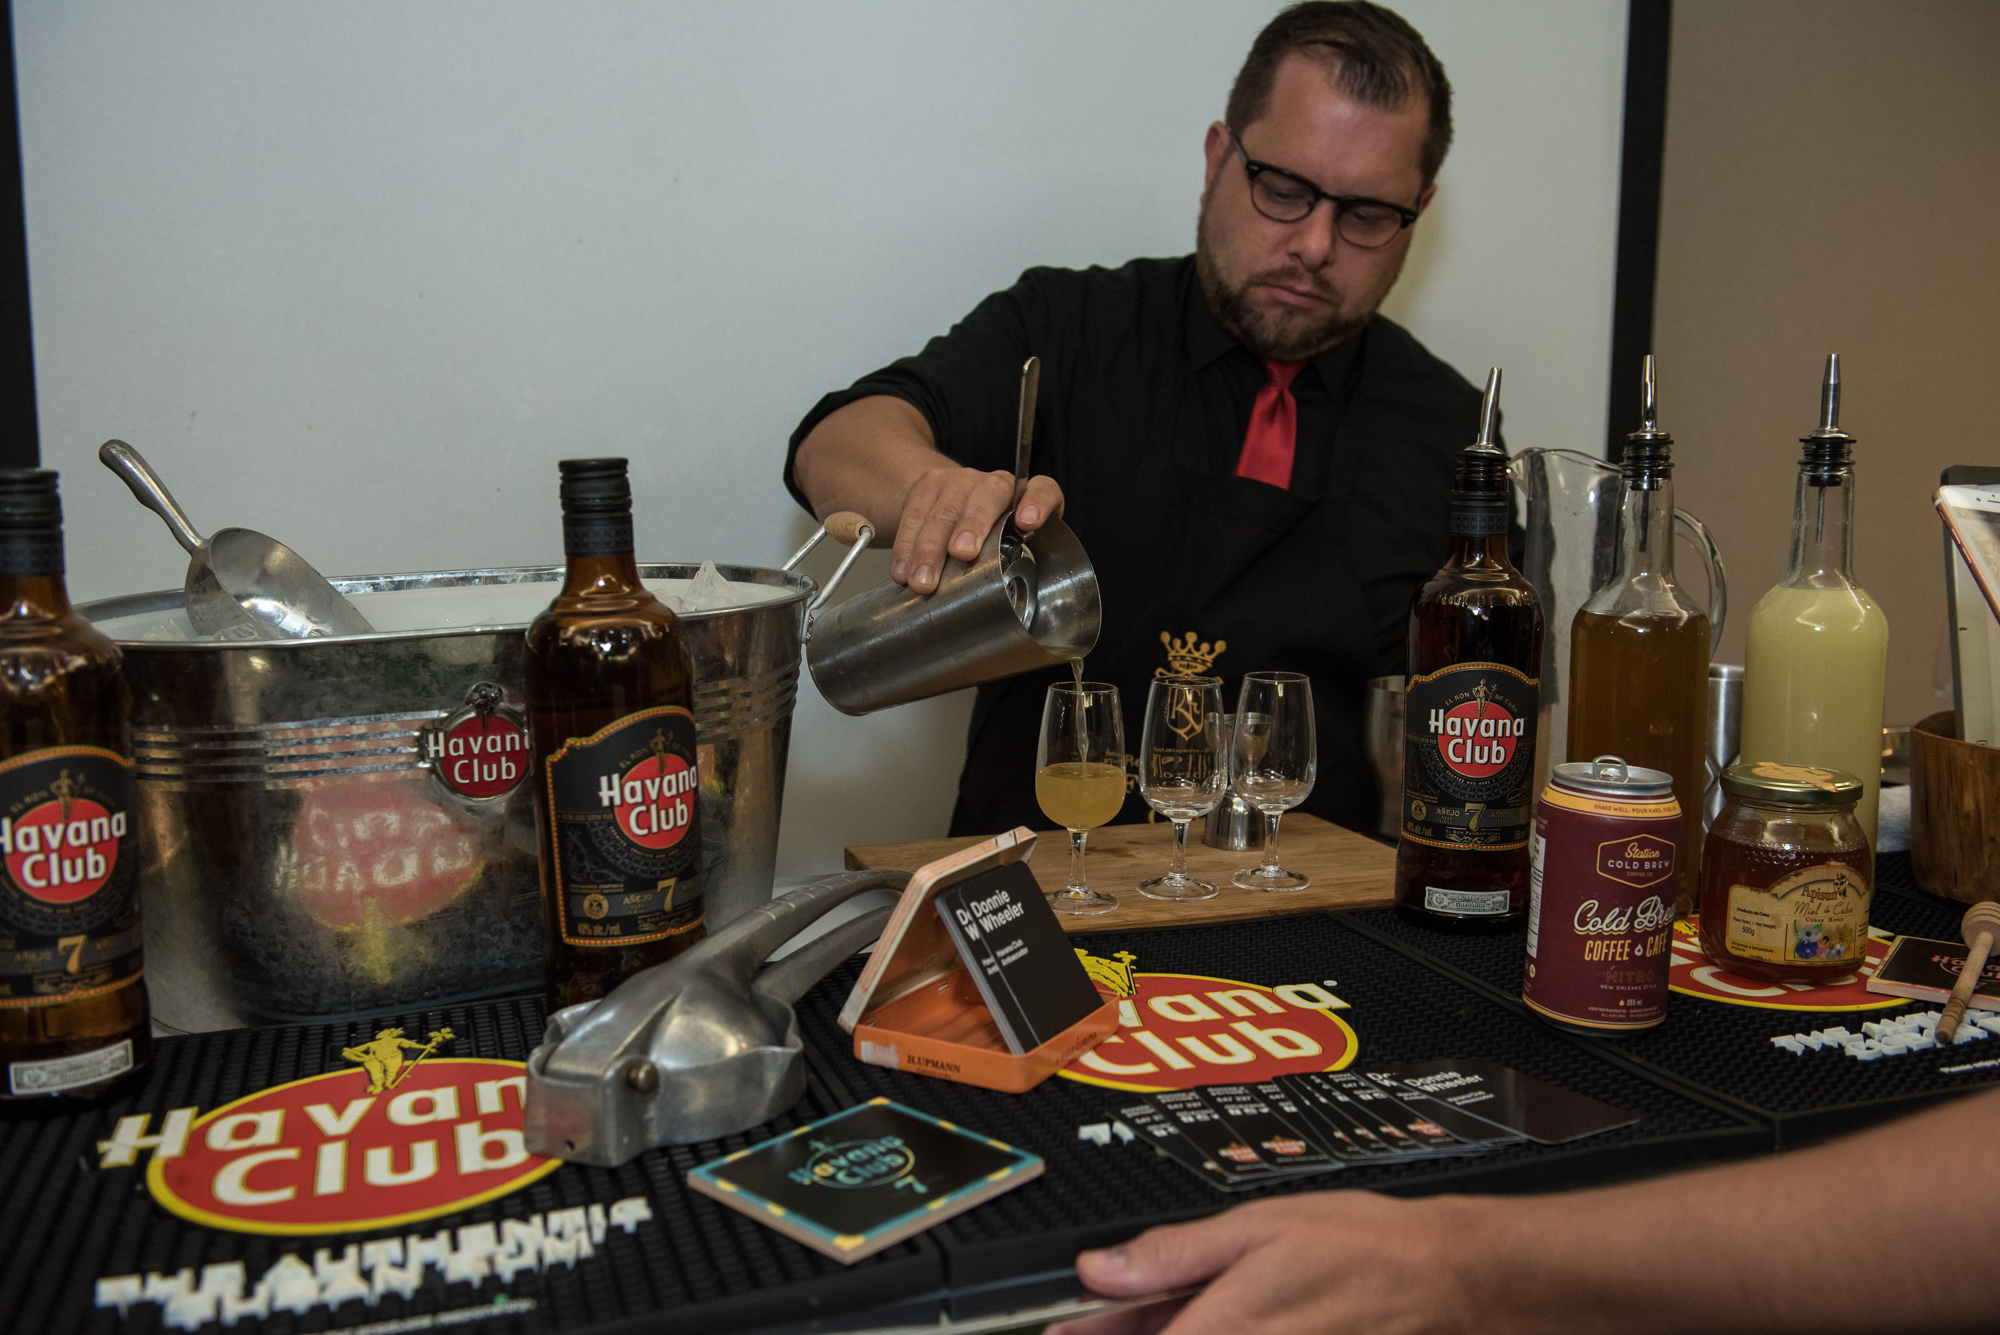 Amazing cocktails from Havana Club